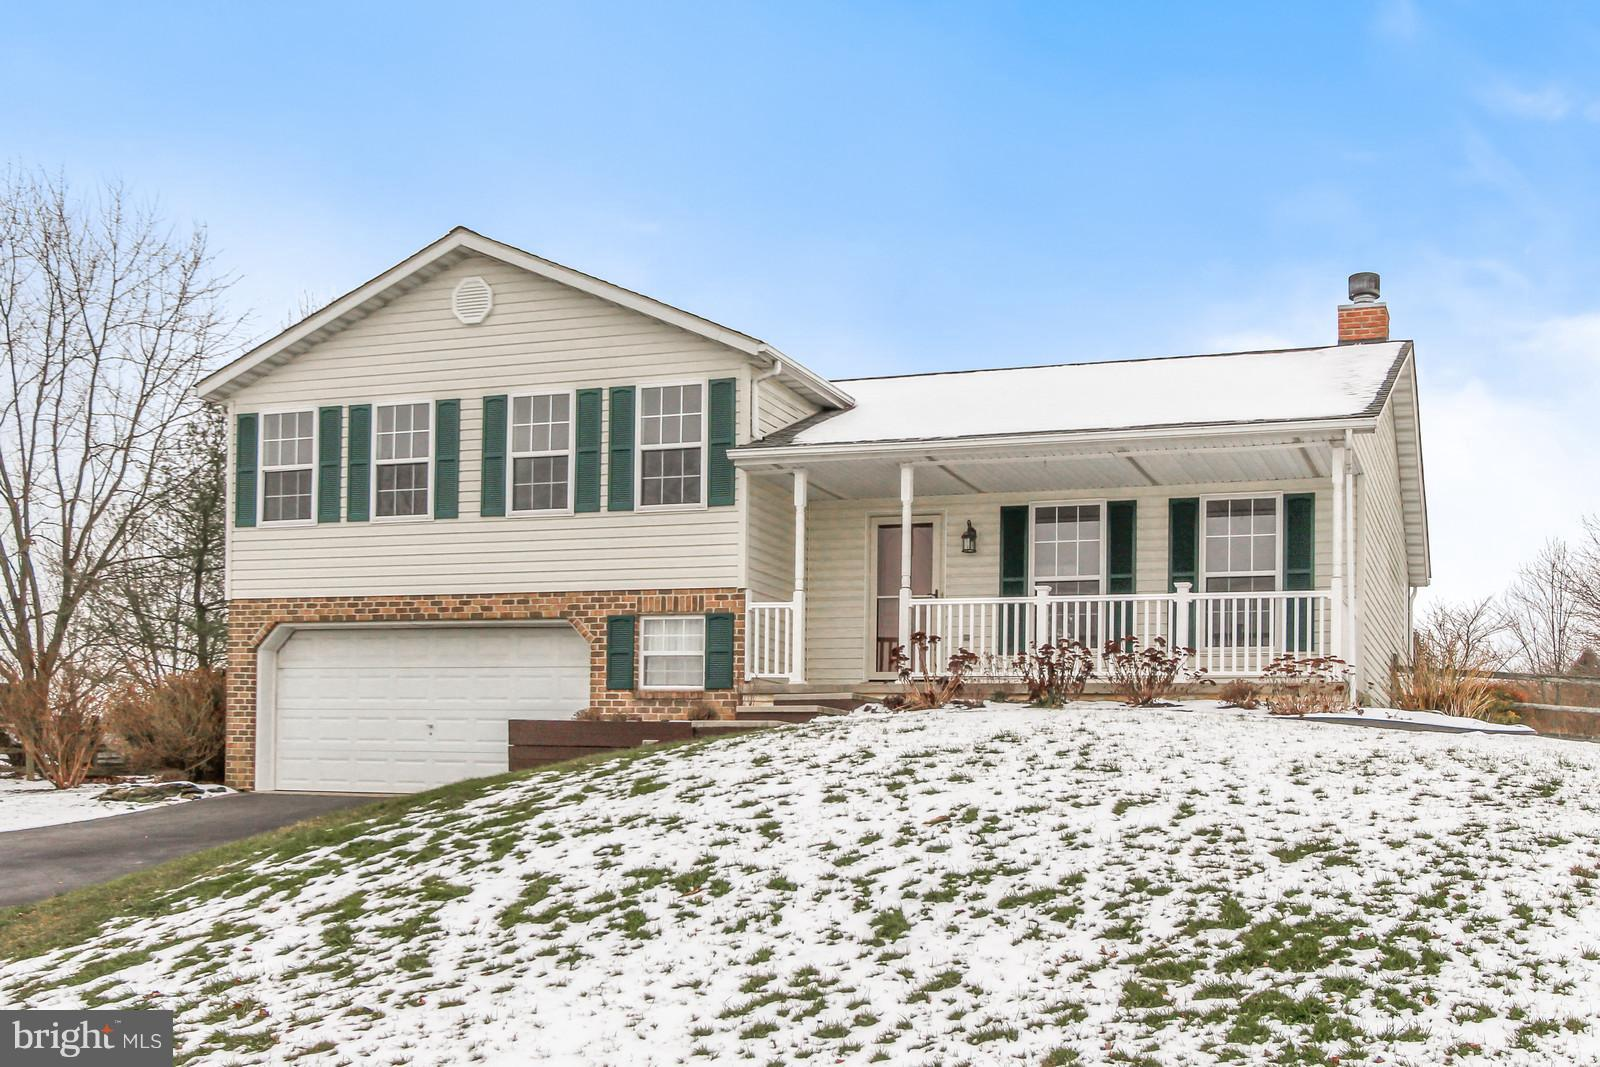 169 BERKSHIRE LANE, STEWARTSTOWN, PA 17363